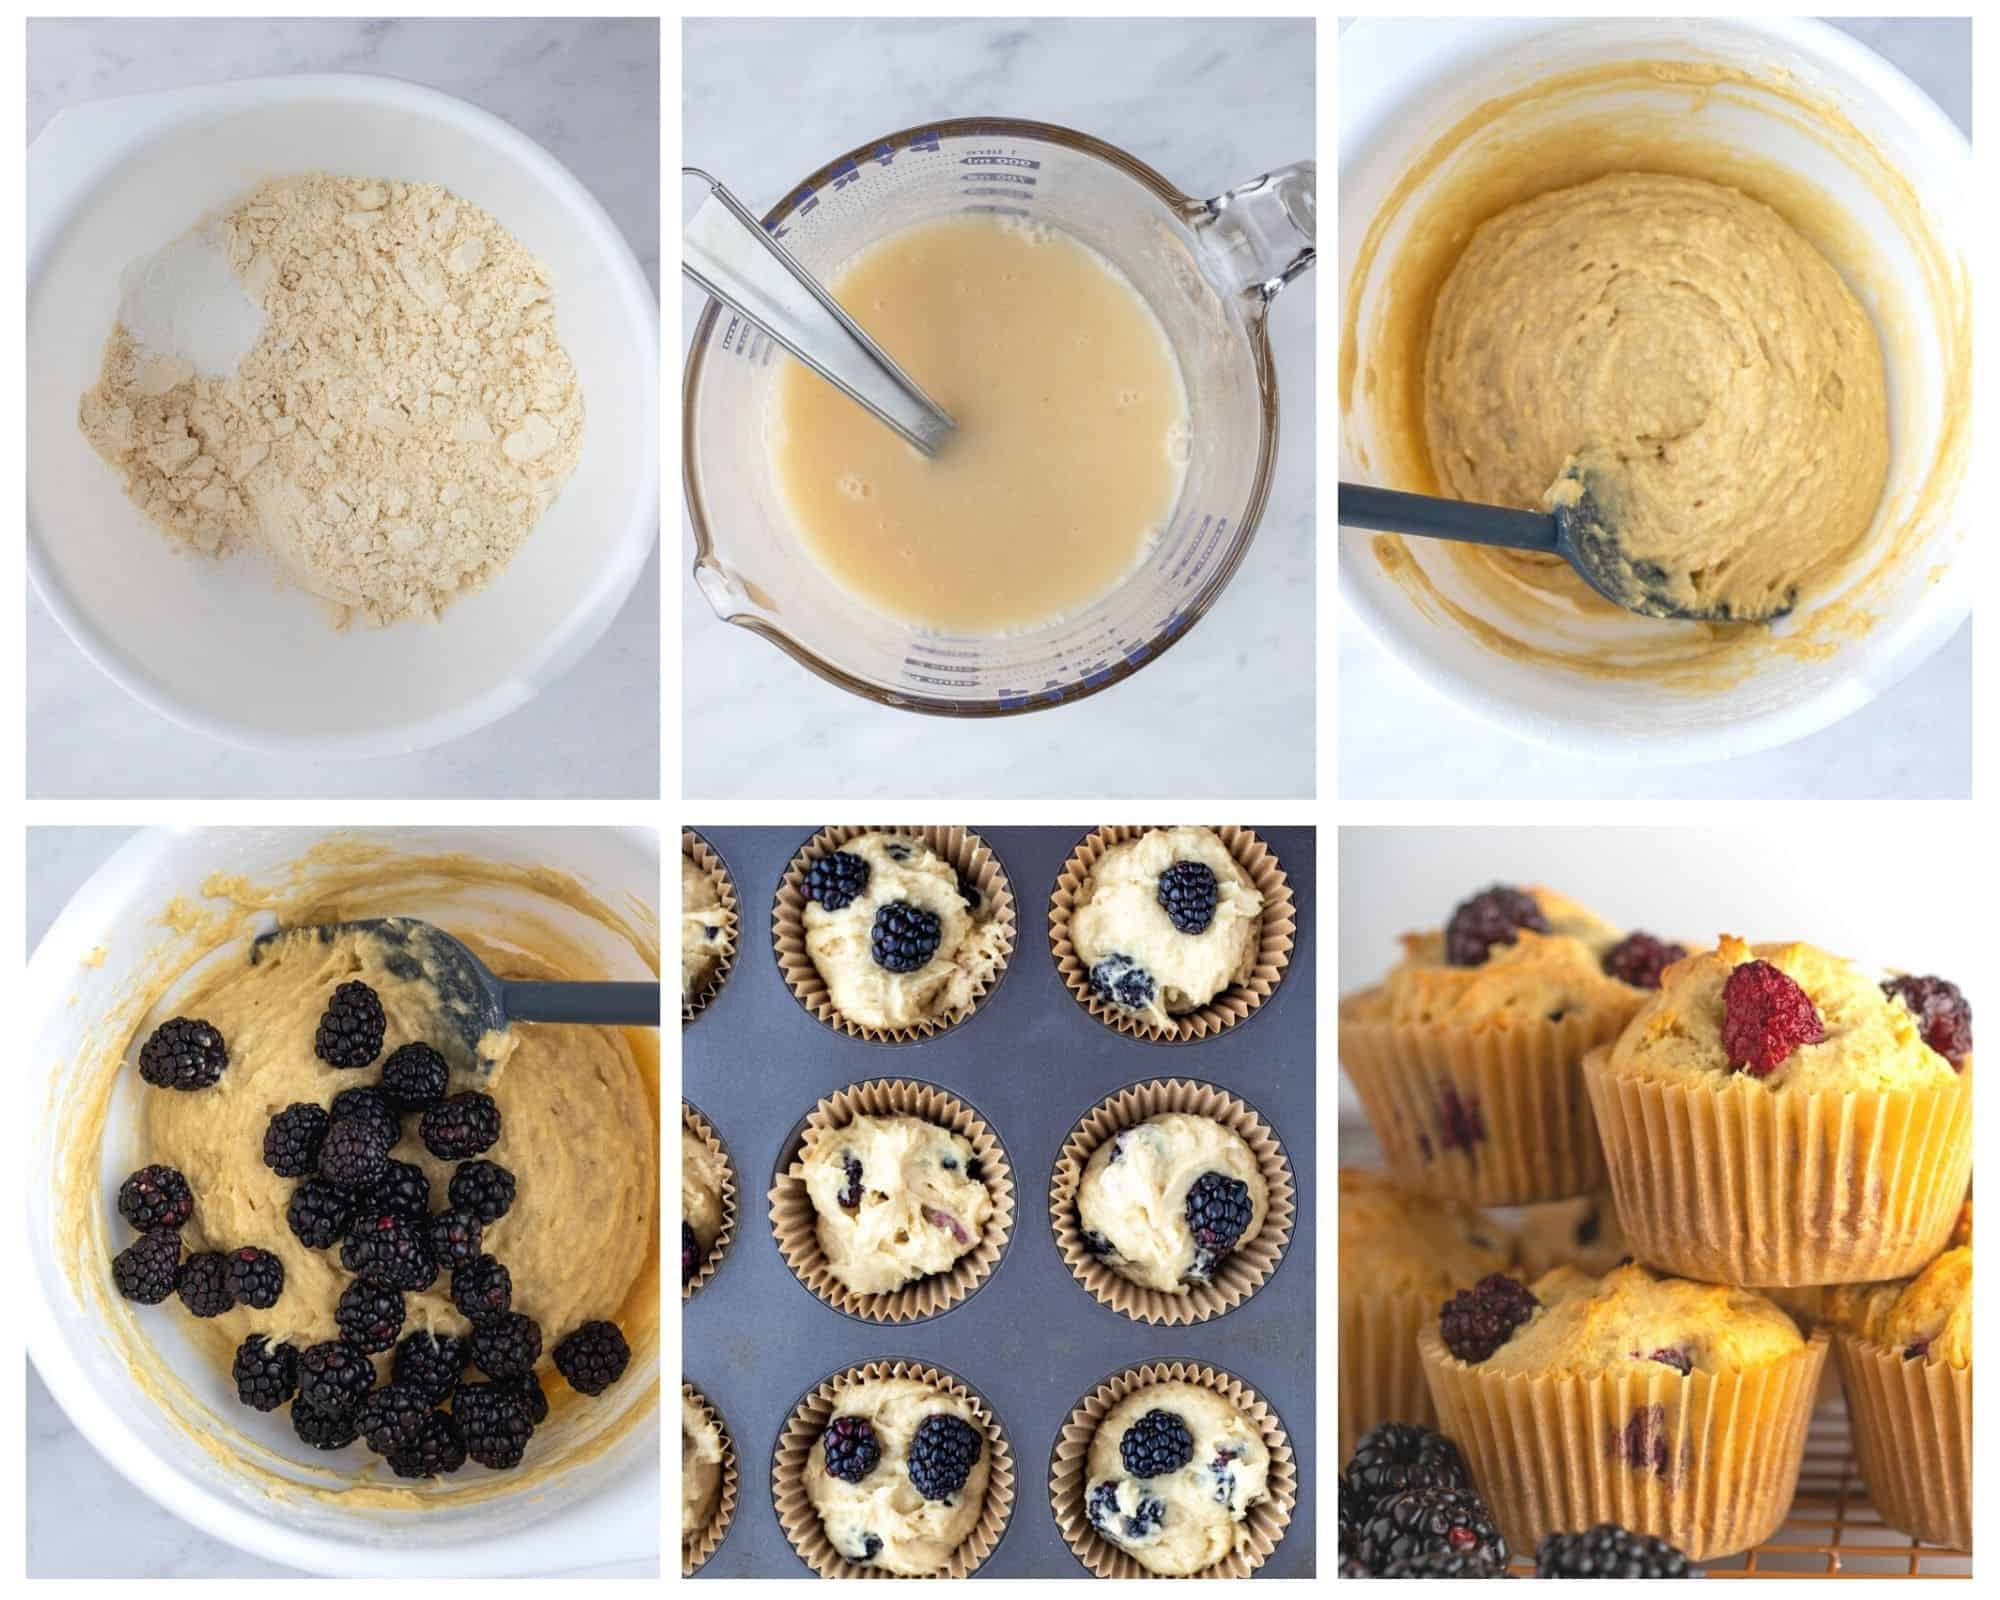 step by step photos showing how to make blackberry muffins